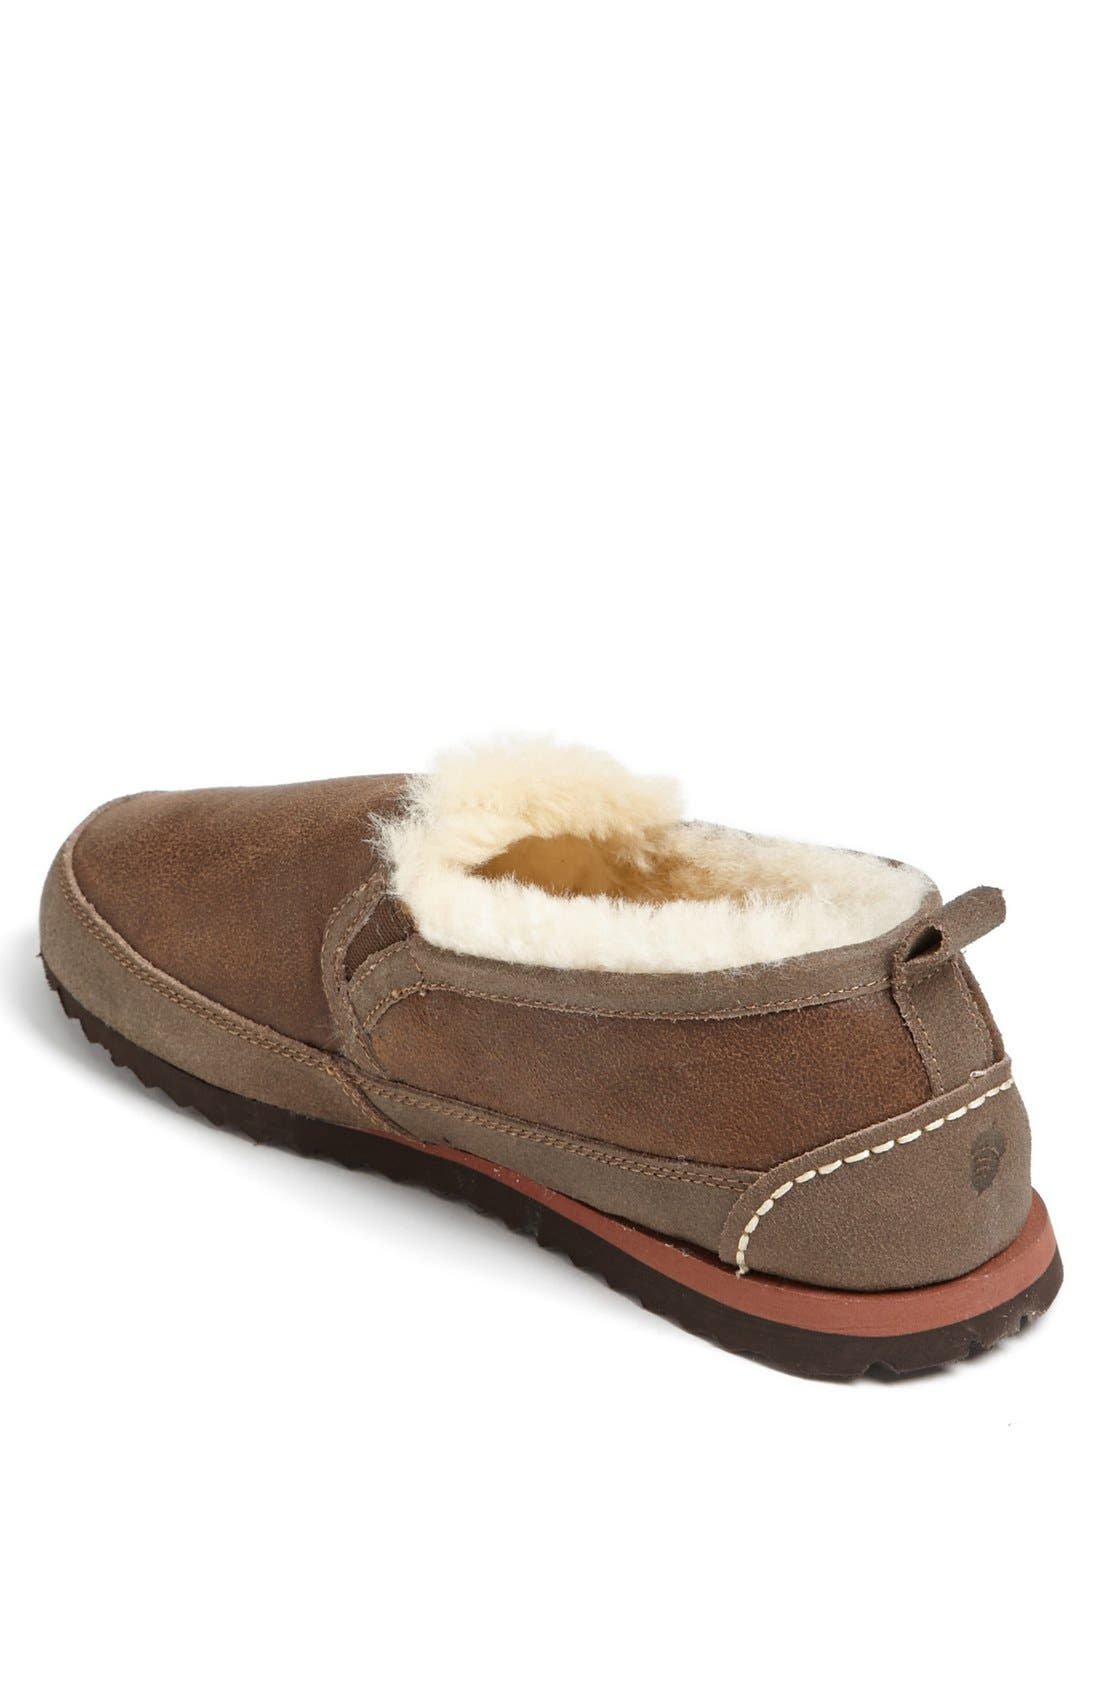 Alternate Image 2  - Acorn 'Romeo' Genuine Sheepskin Slipper